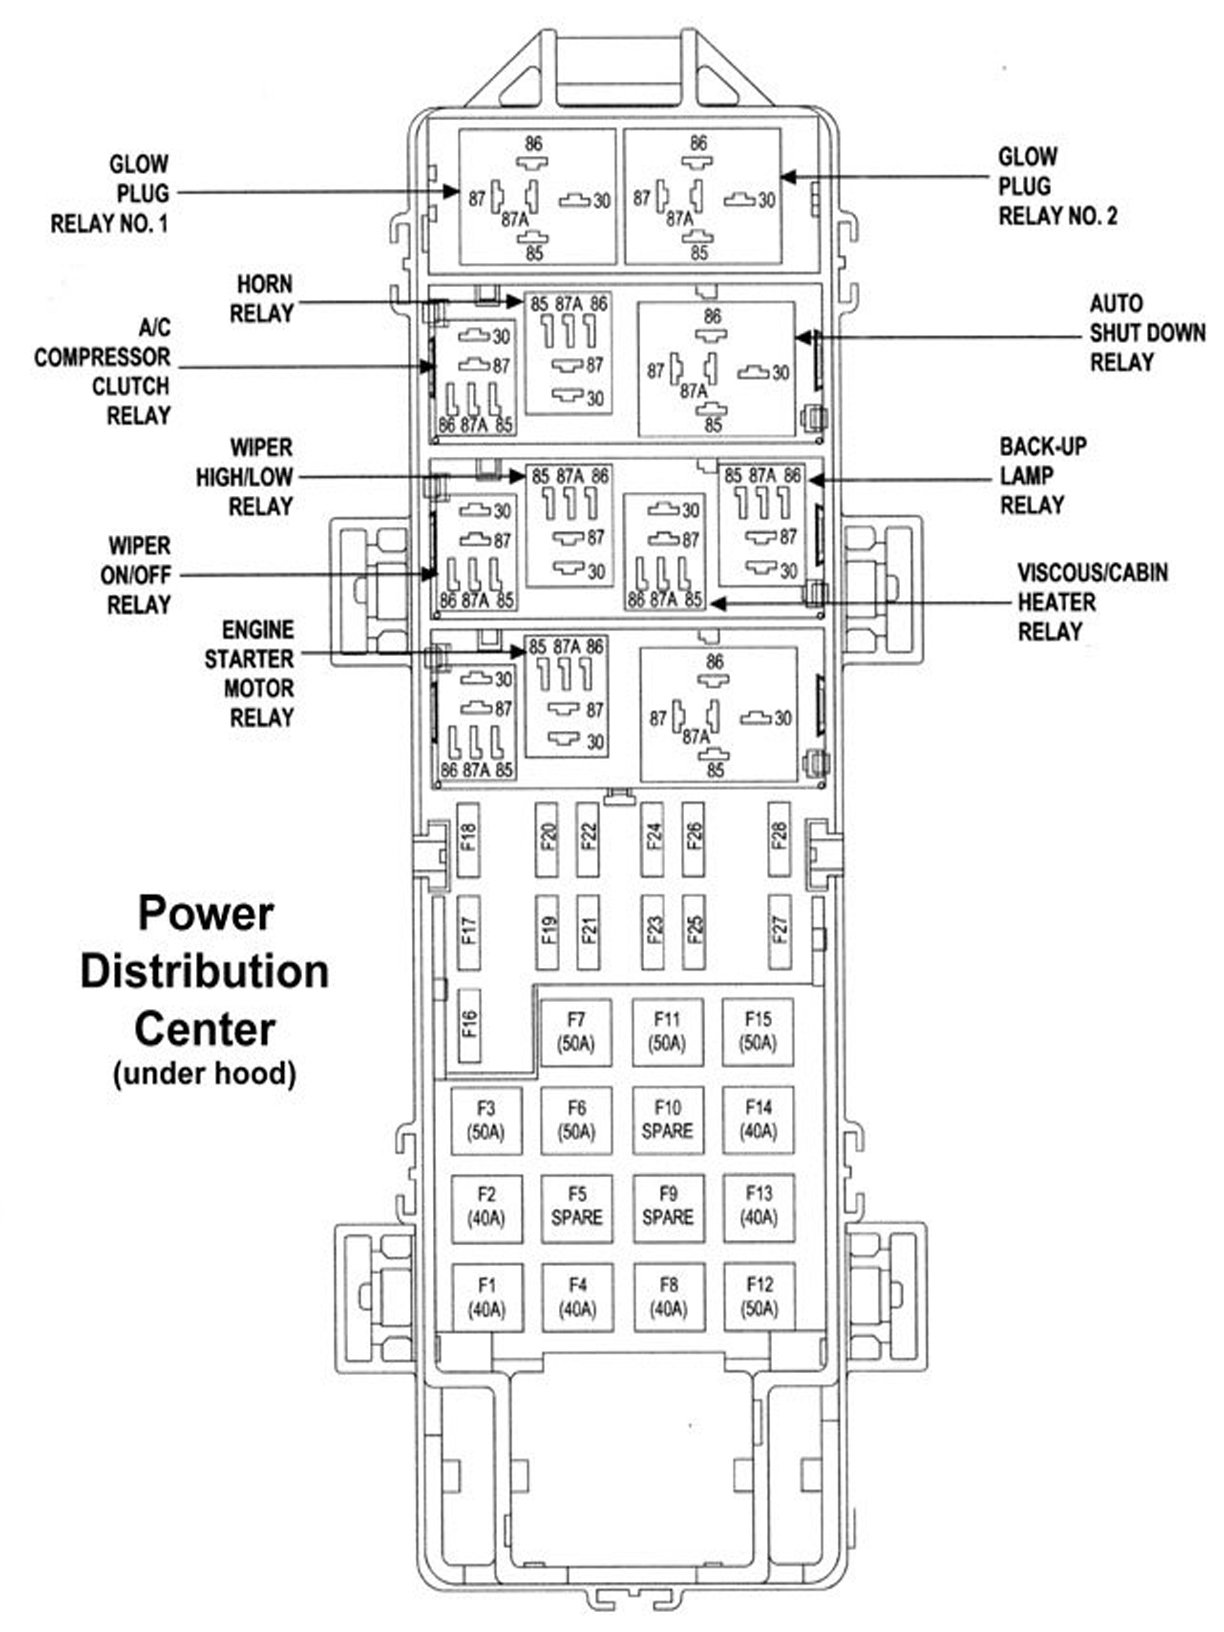 jeep laredo fuse box jeep grand cherokee wj 1999 to 2004 fuse box diagram cherokeeforum figure 3 power distribution center